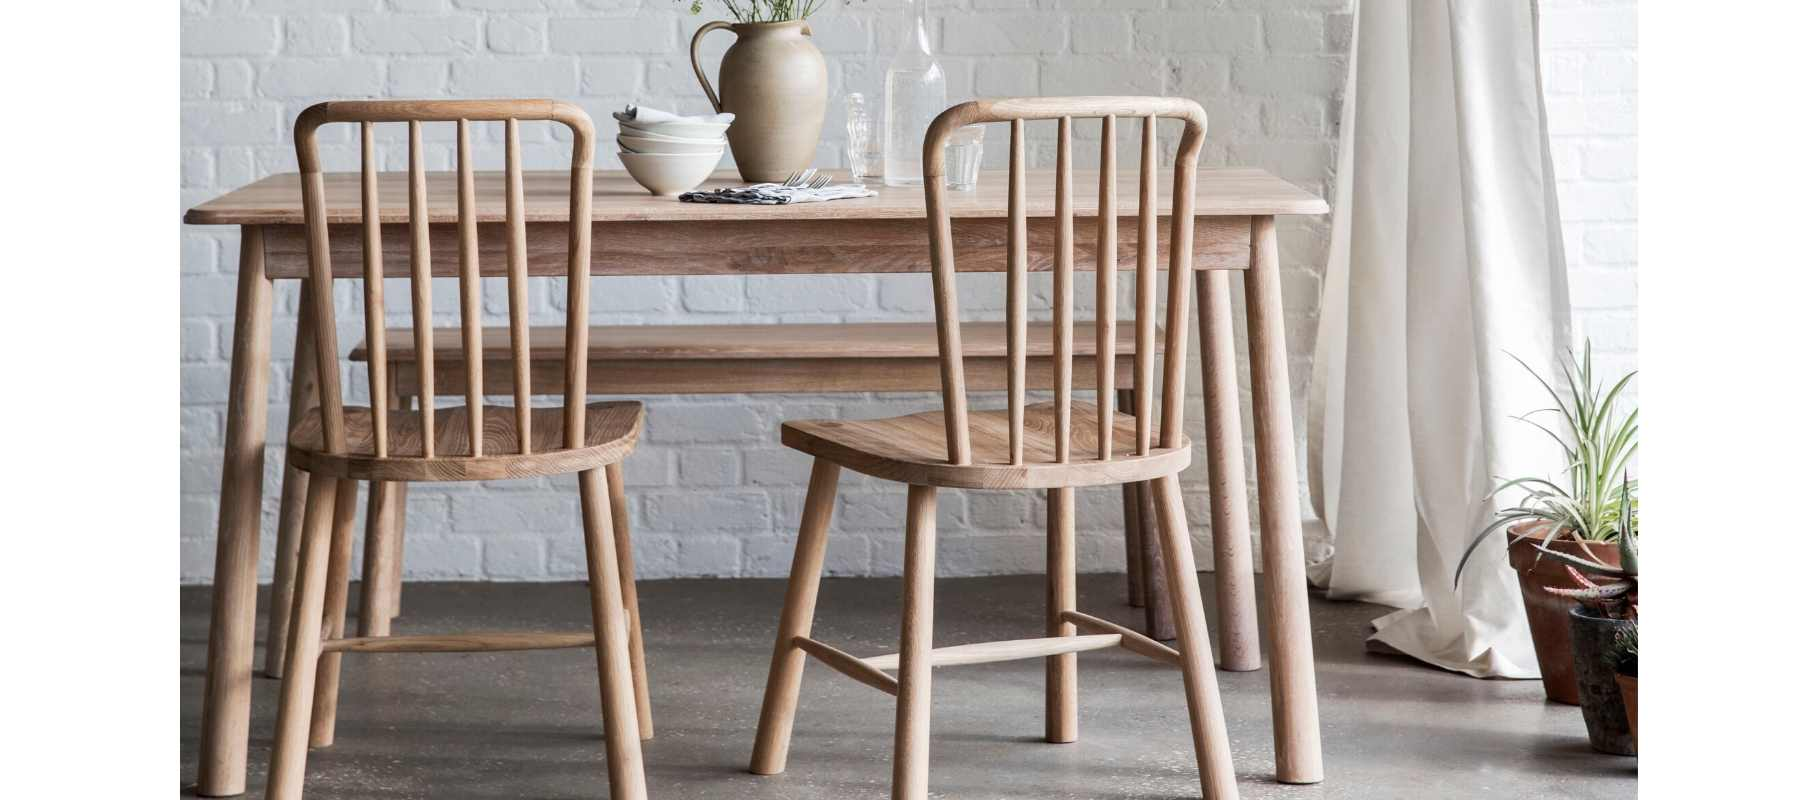 Hudson Living Wycombe Oak Dining Chair and Table